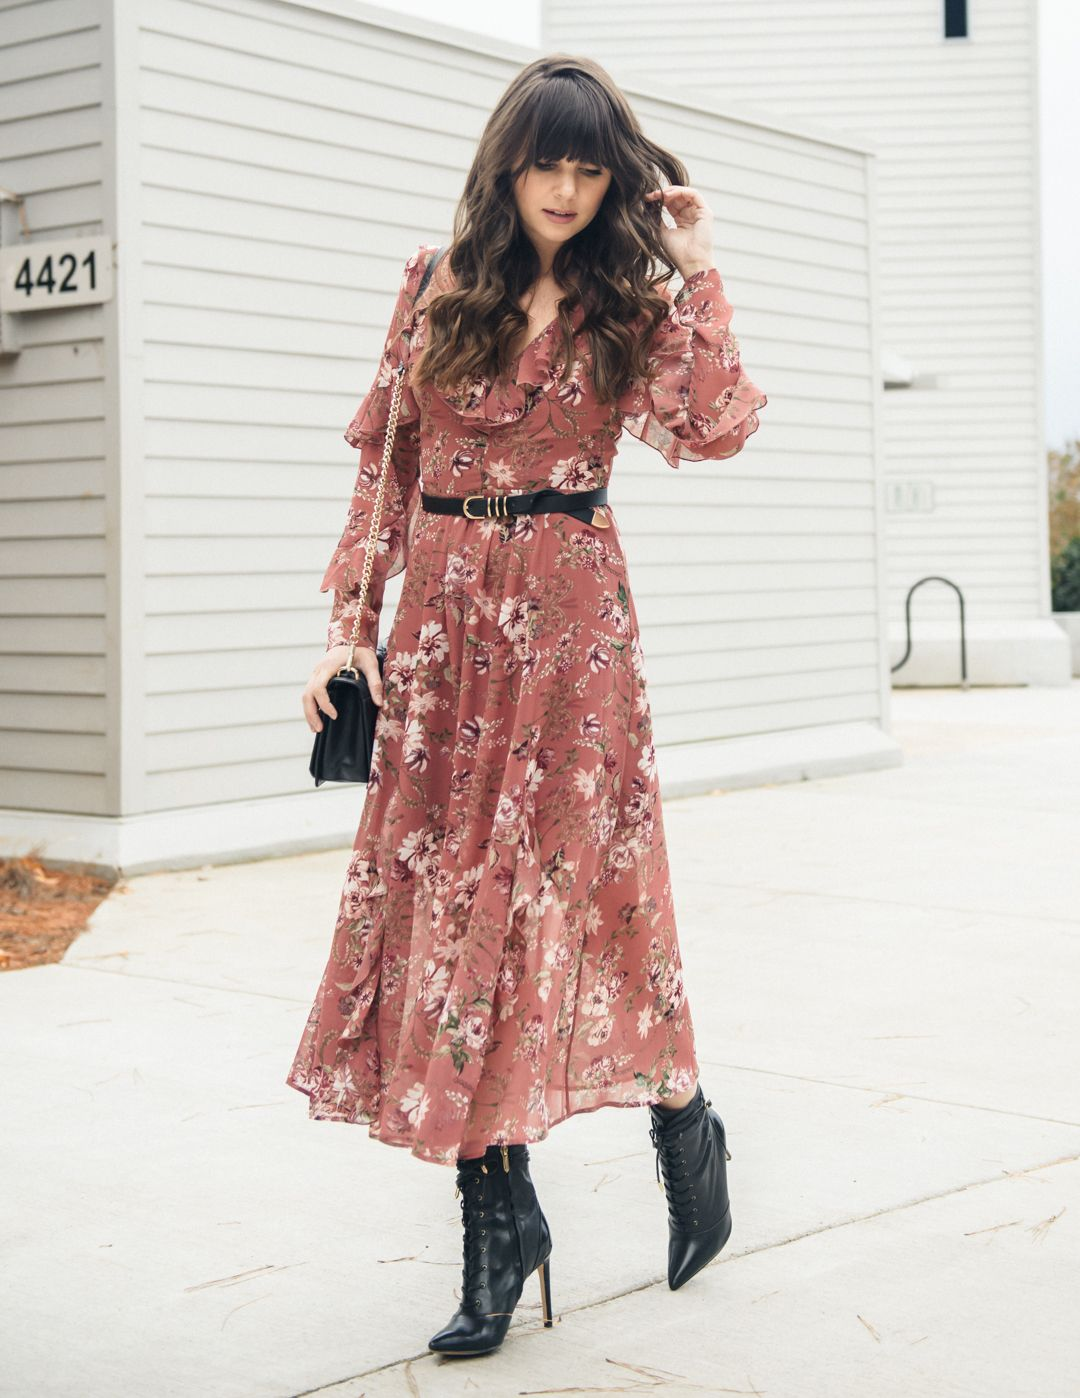 How To Wear Floral Dresses Year Round The M A Times Floral Dress Outfits Floral Dress Winter Floral Dress Black